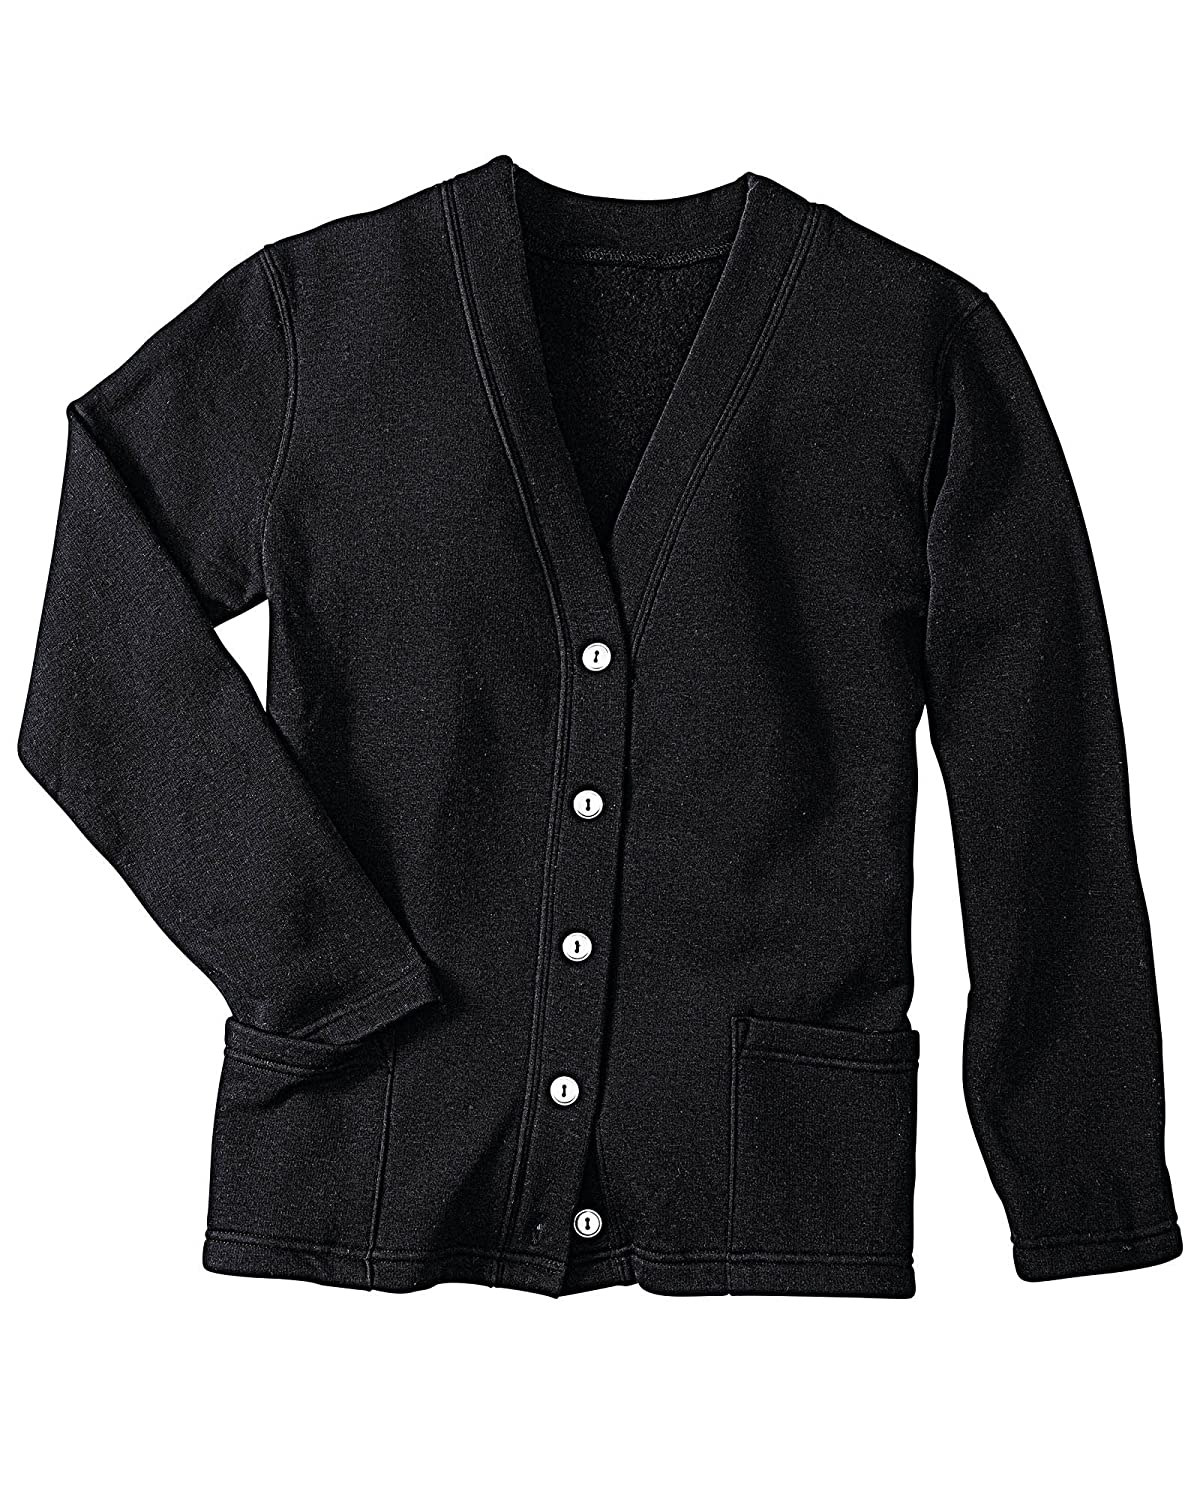 Pembrook Womens Fleece Cardigan Jacket with Embroidery at Amazon ...